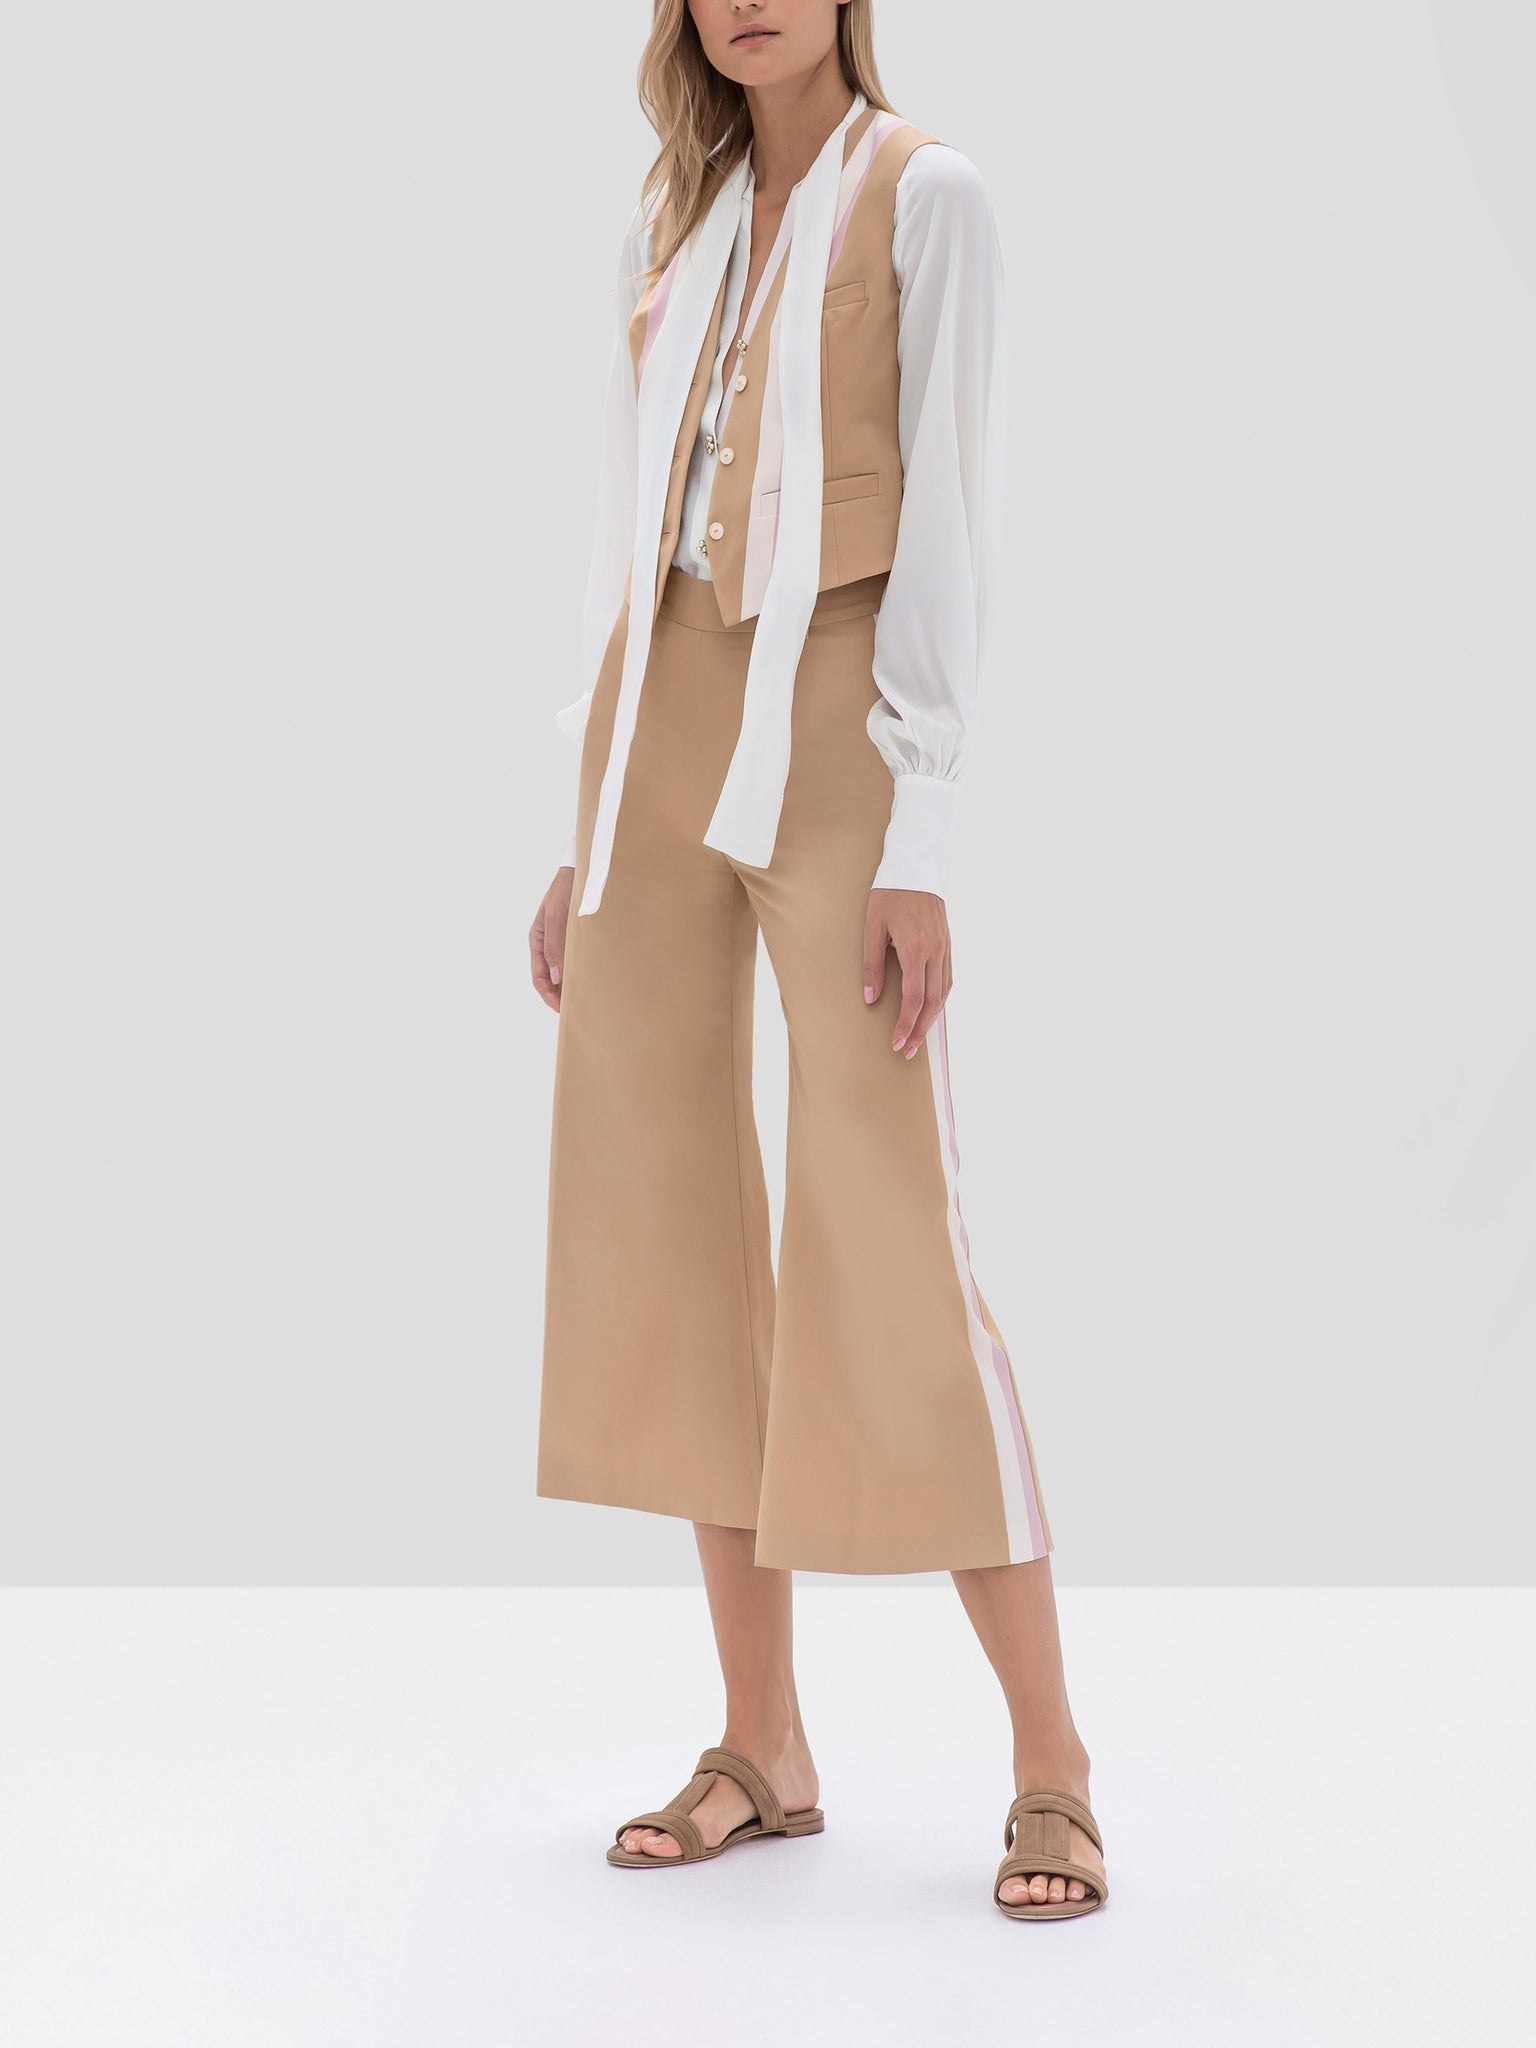 Alexis Franz Vest and Lennox Pant in Striped Tan